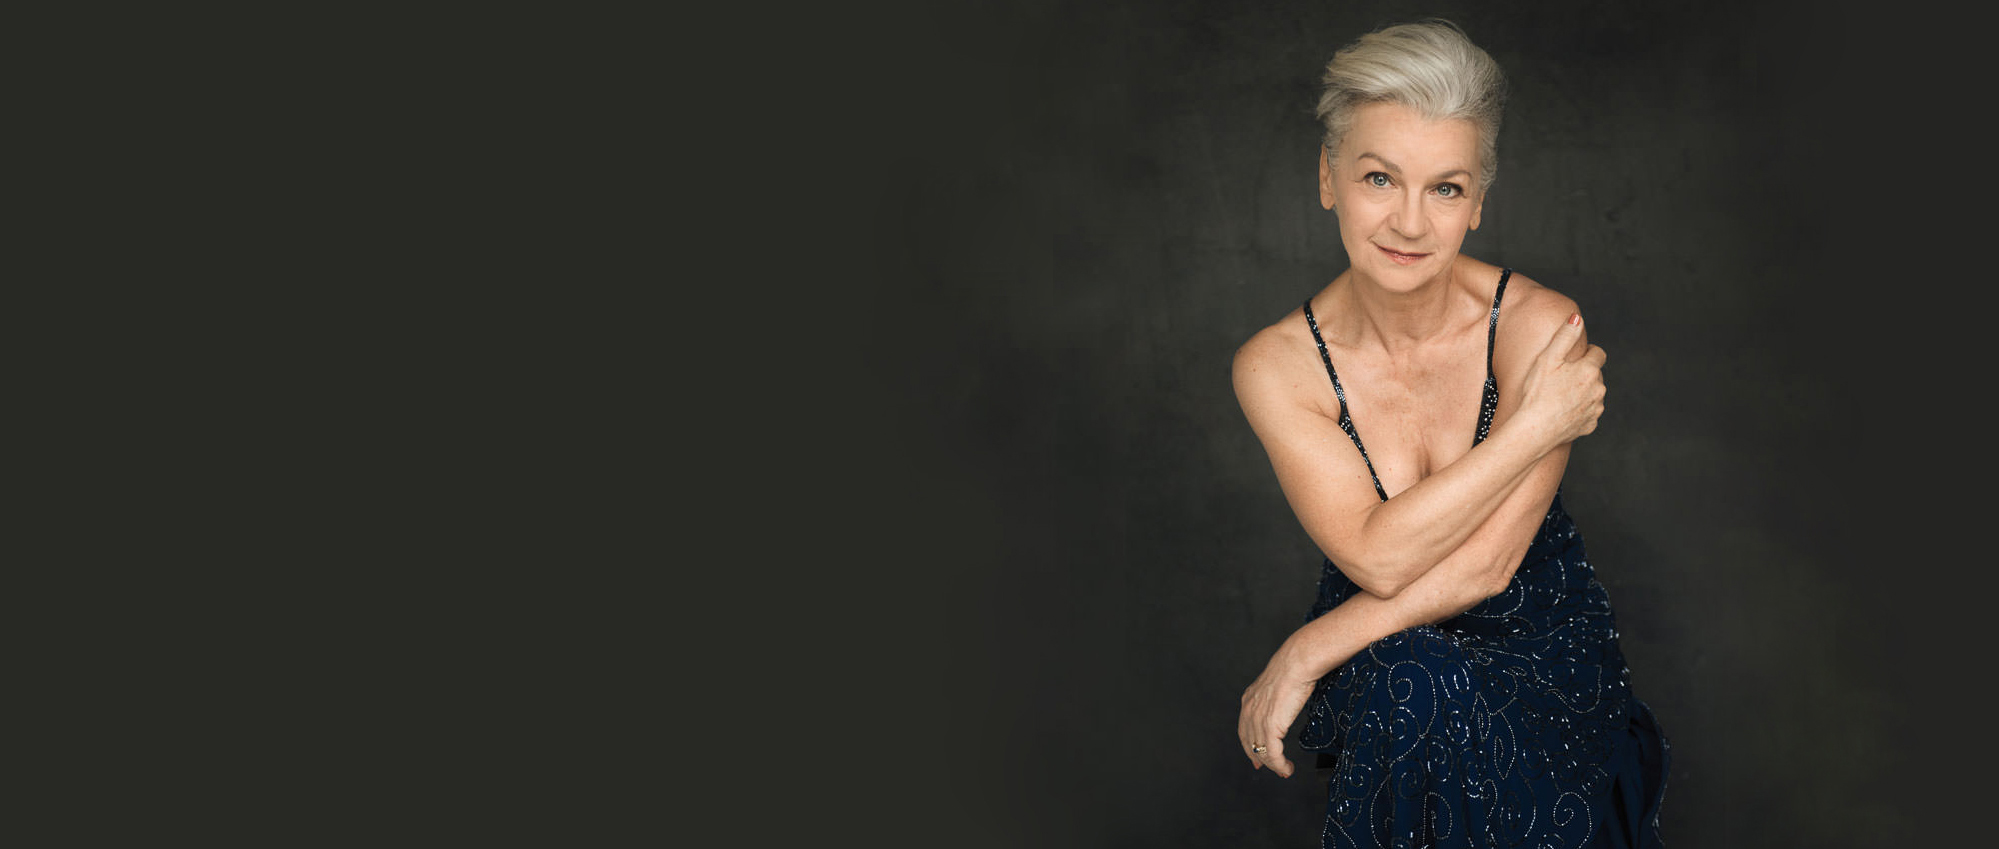 portrait of a grey haired woman in an evening dress